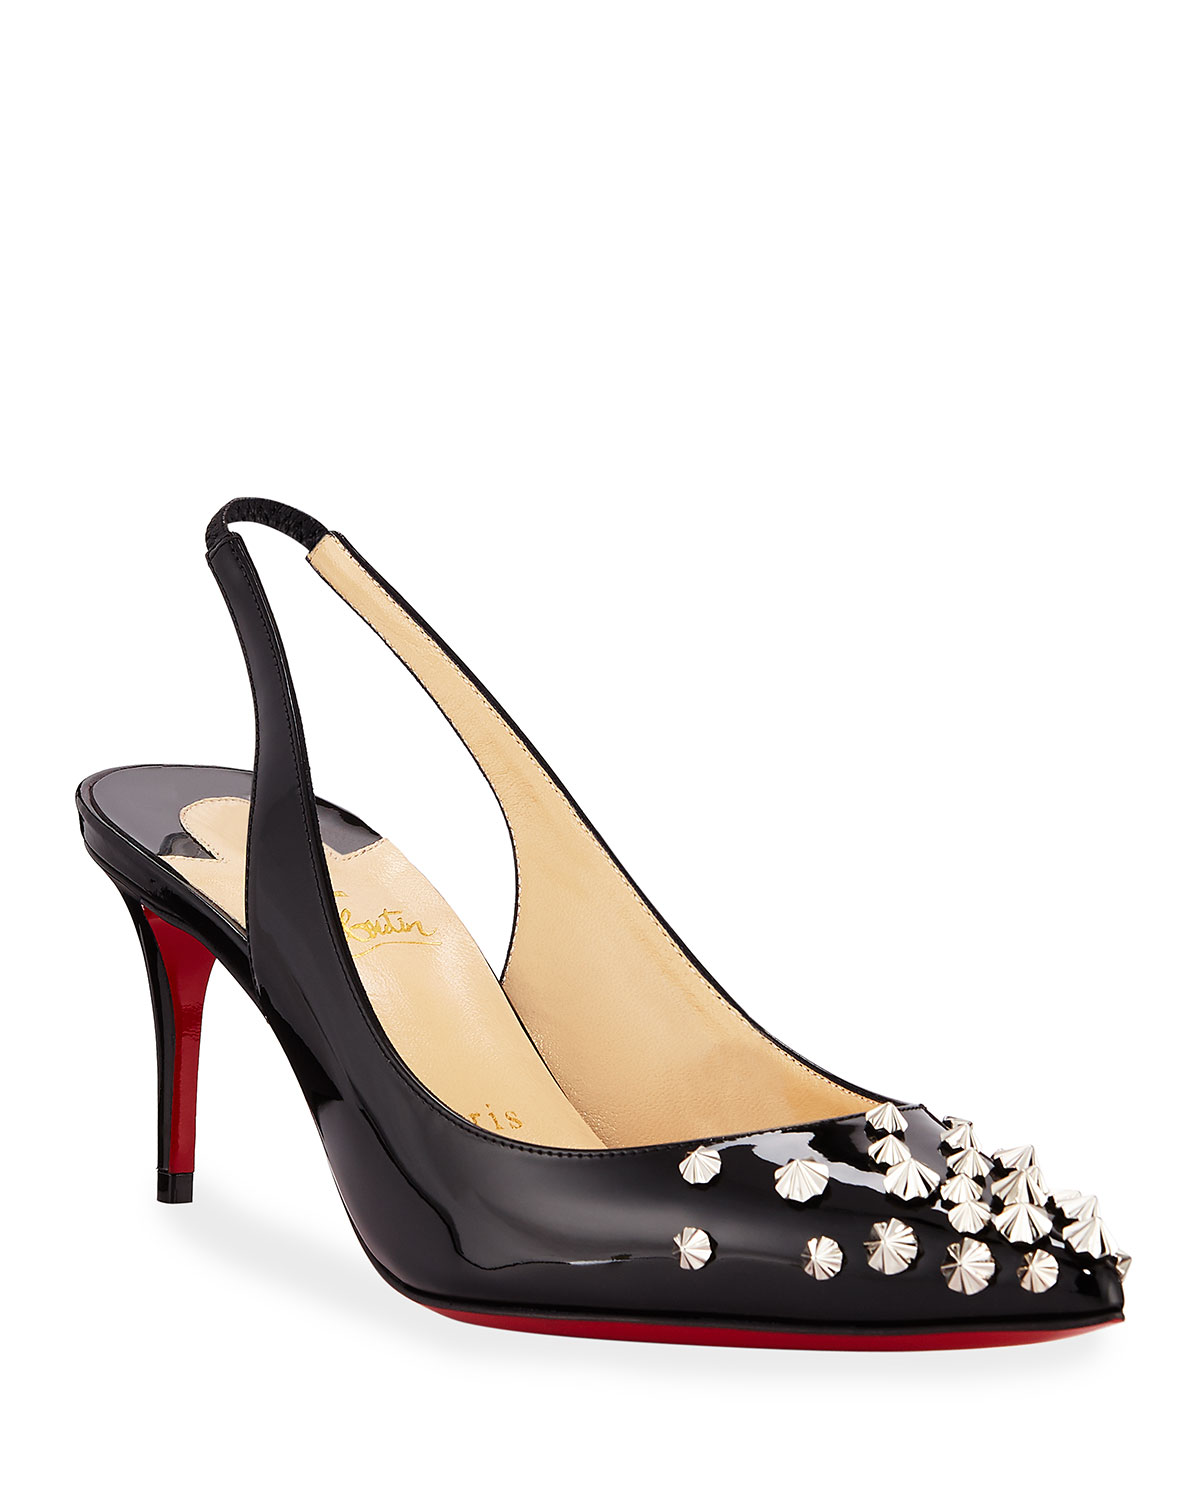 e9583616bd50 Christian Louboutin Drama Spikes 70mm Red Sole Slingback Pumps ...